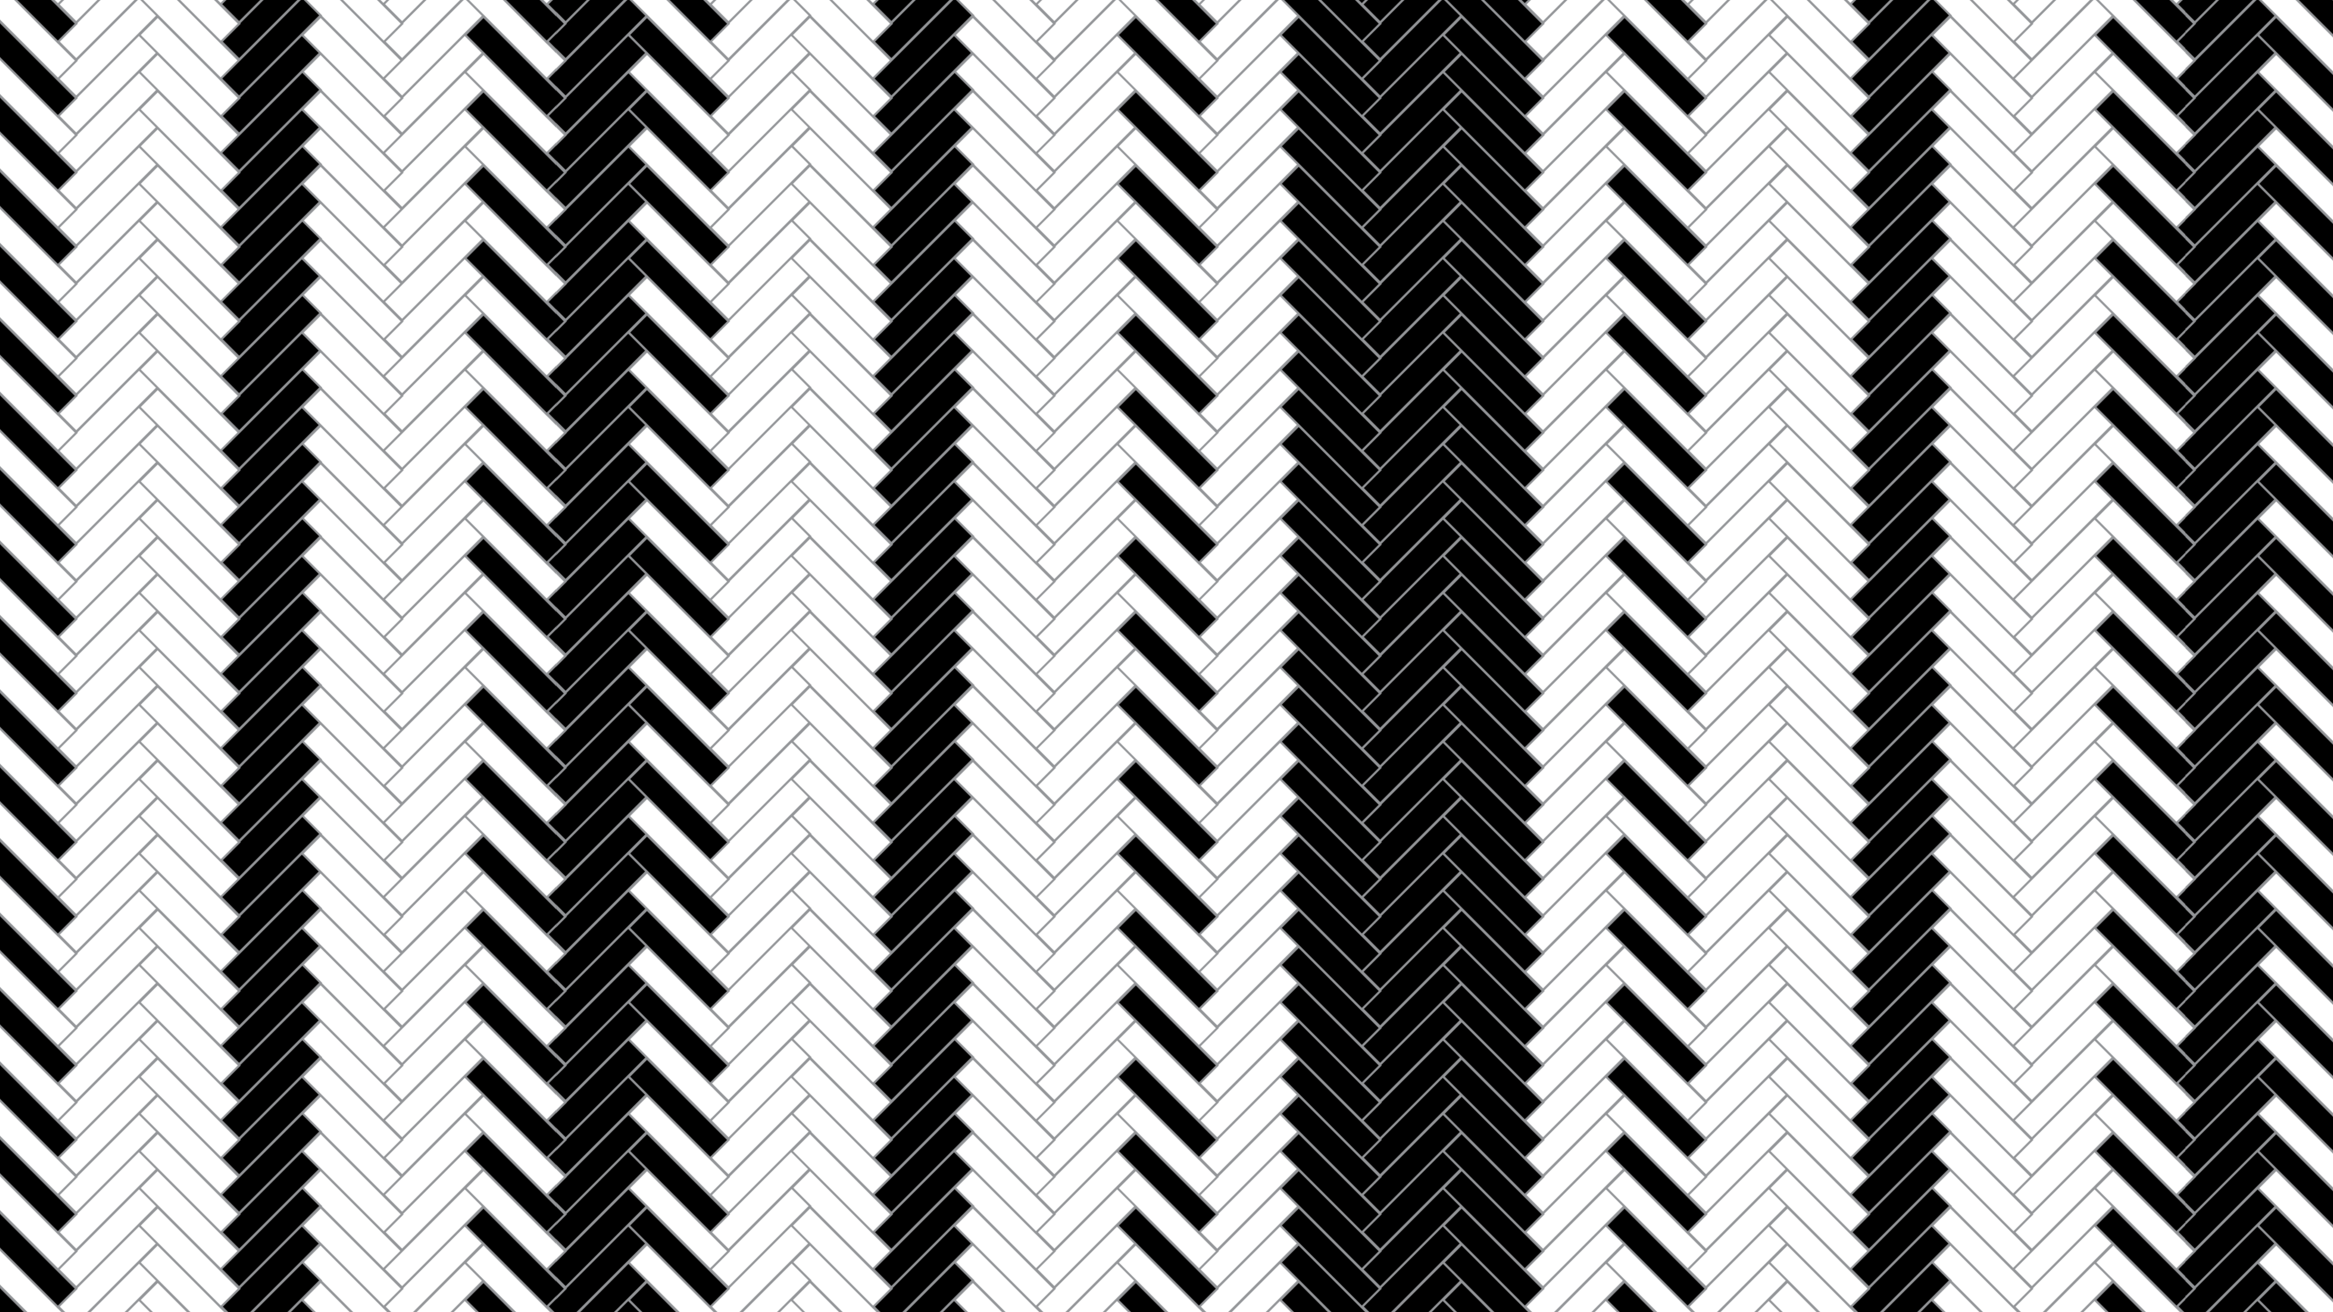 016 - A DASH OF HERRINGBONE